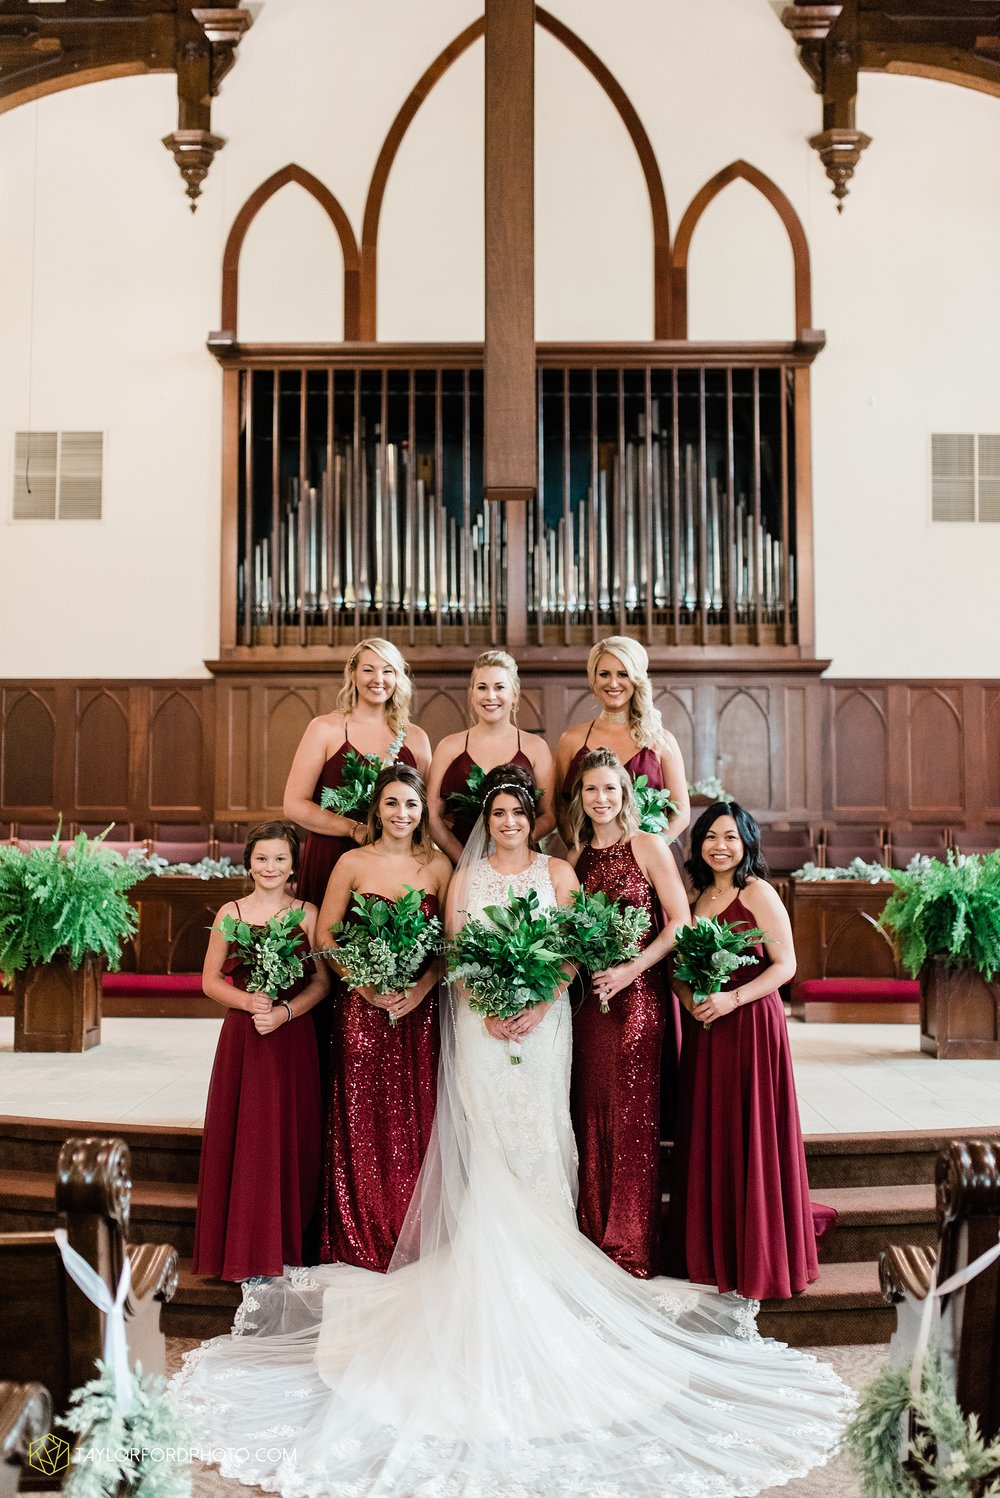 van-wert-ohio-first-united-methodist-church-county-dairy-barn-wedding-photographer-taylor-ford-photography_9813.jpg